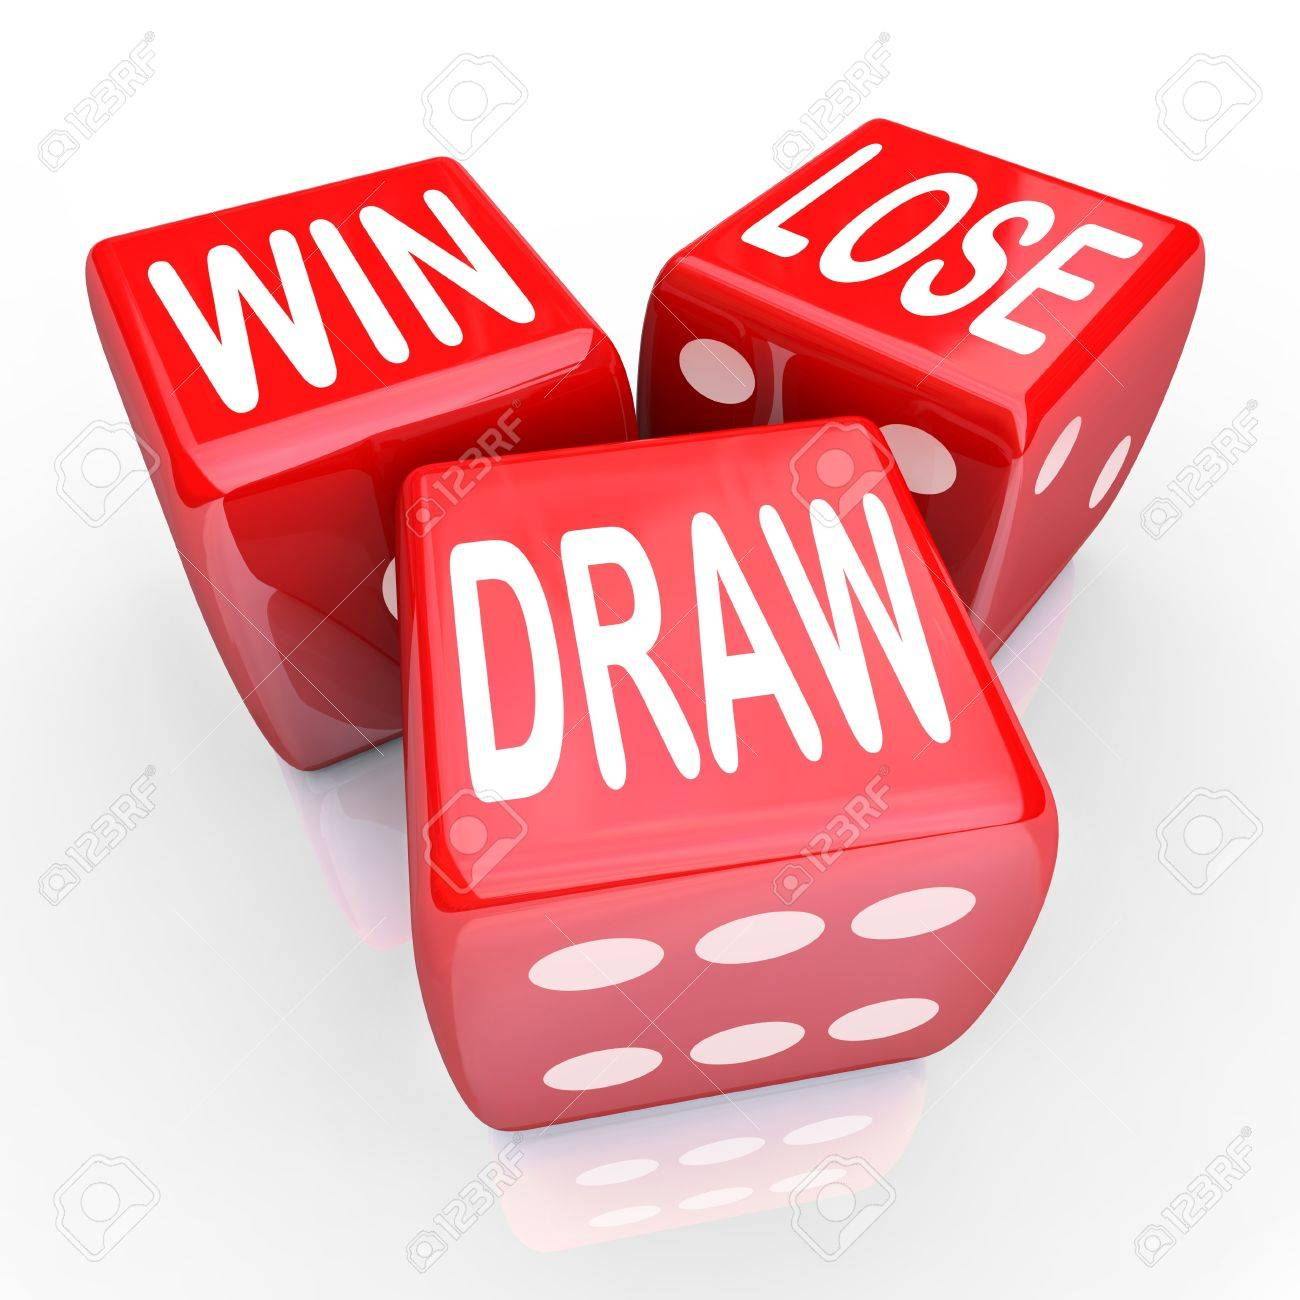 Win Lose And Draw Words On Three Red Dice Rolling In A Game Stock